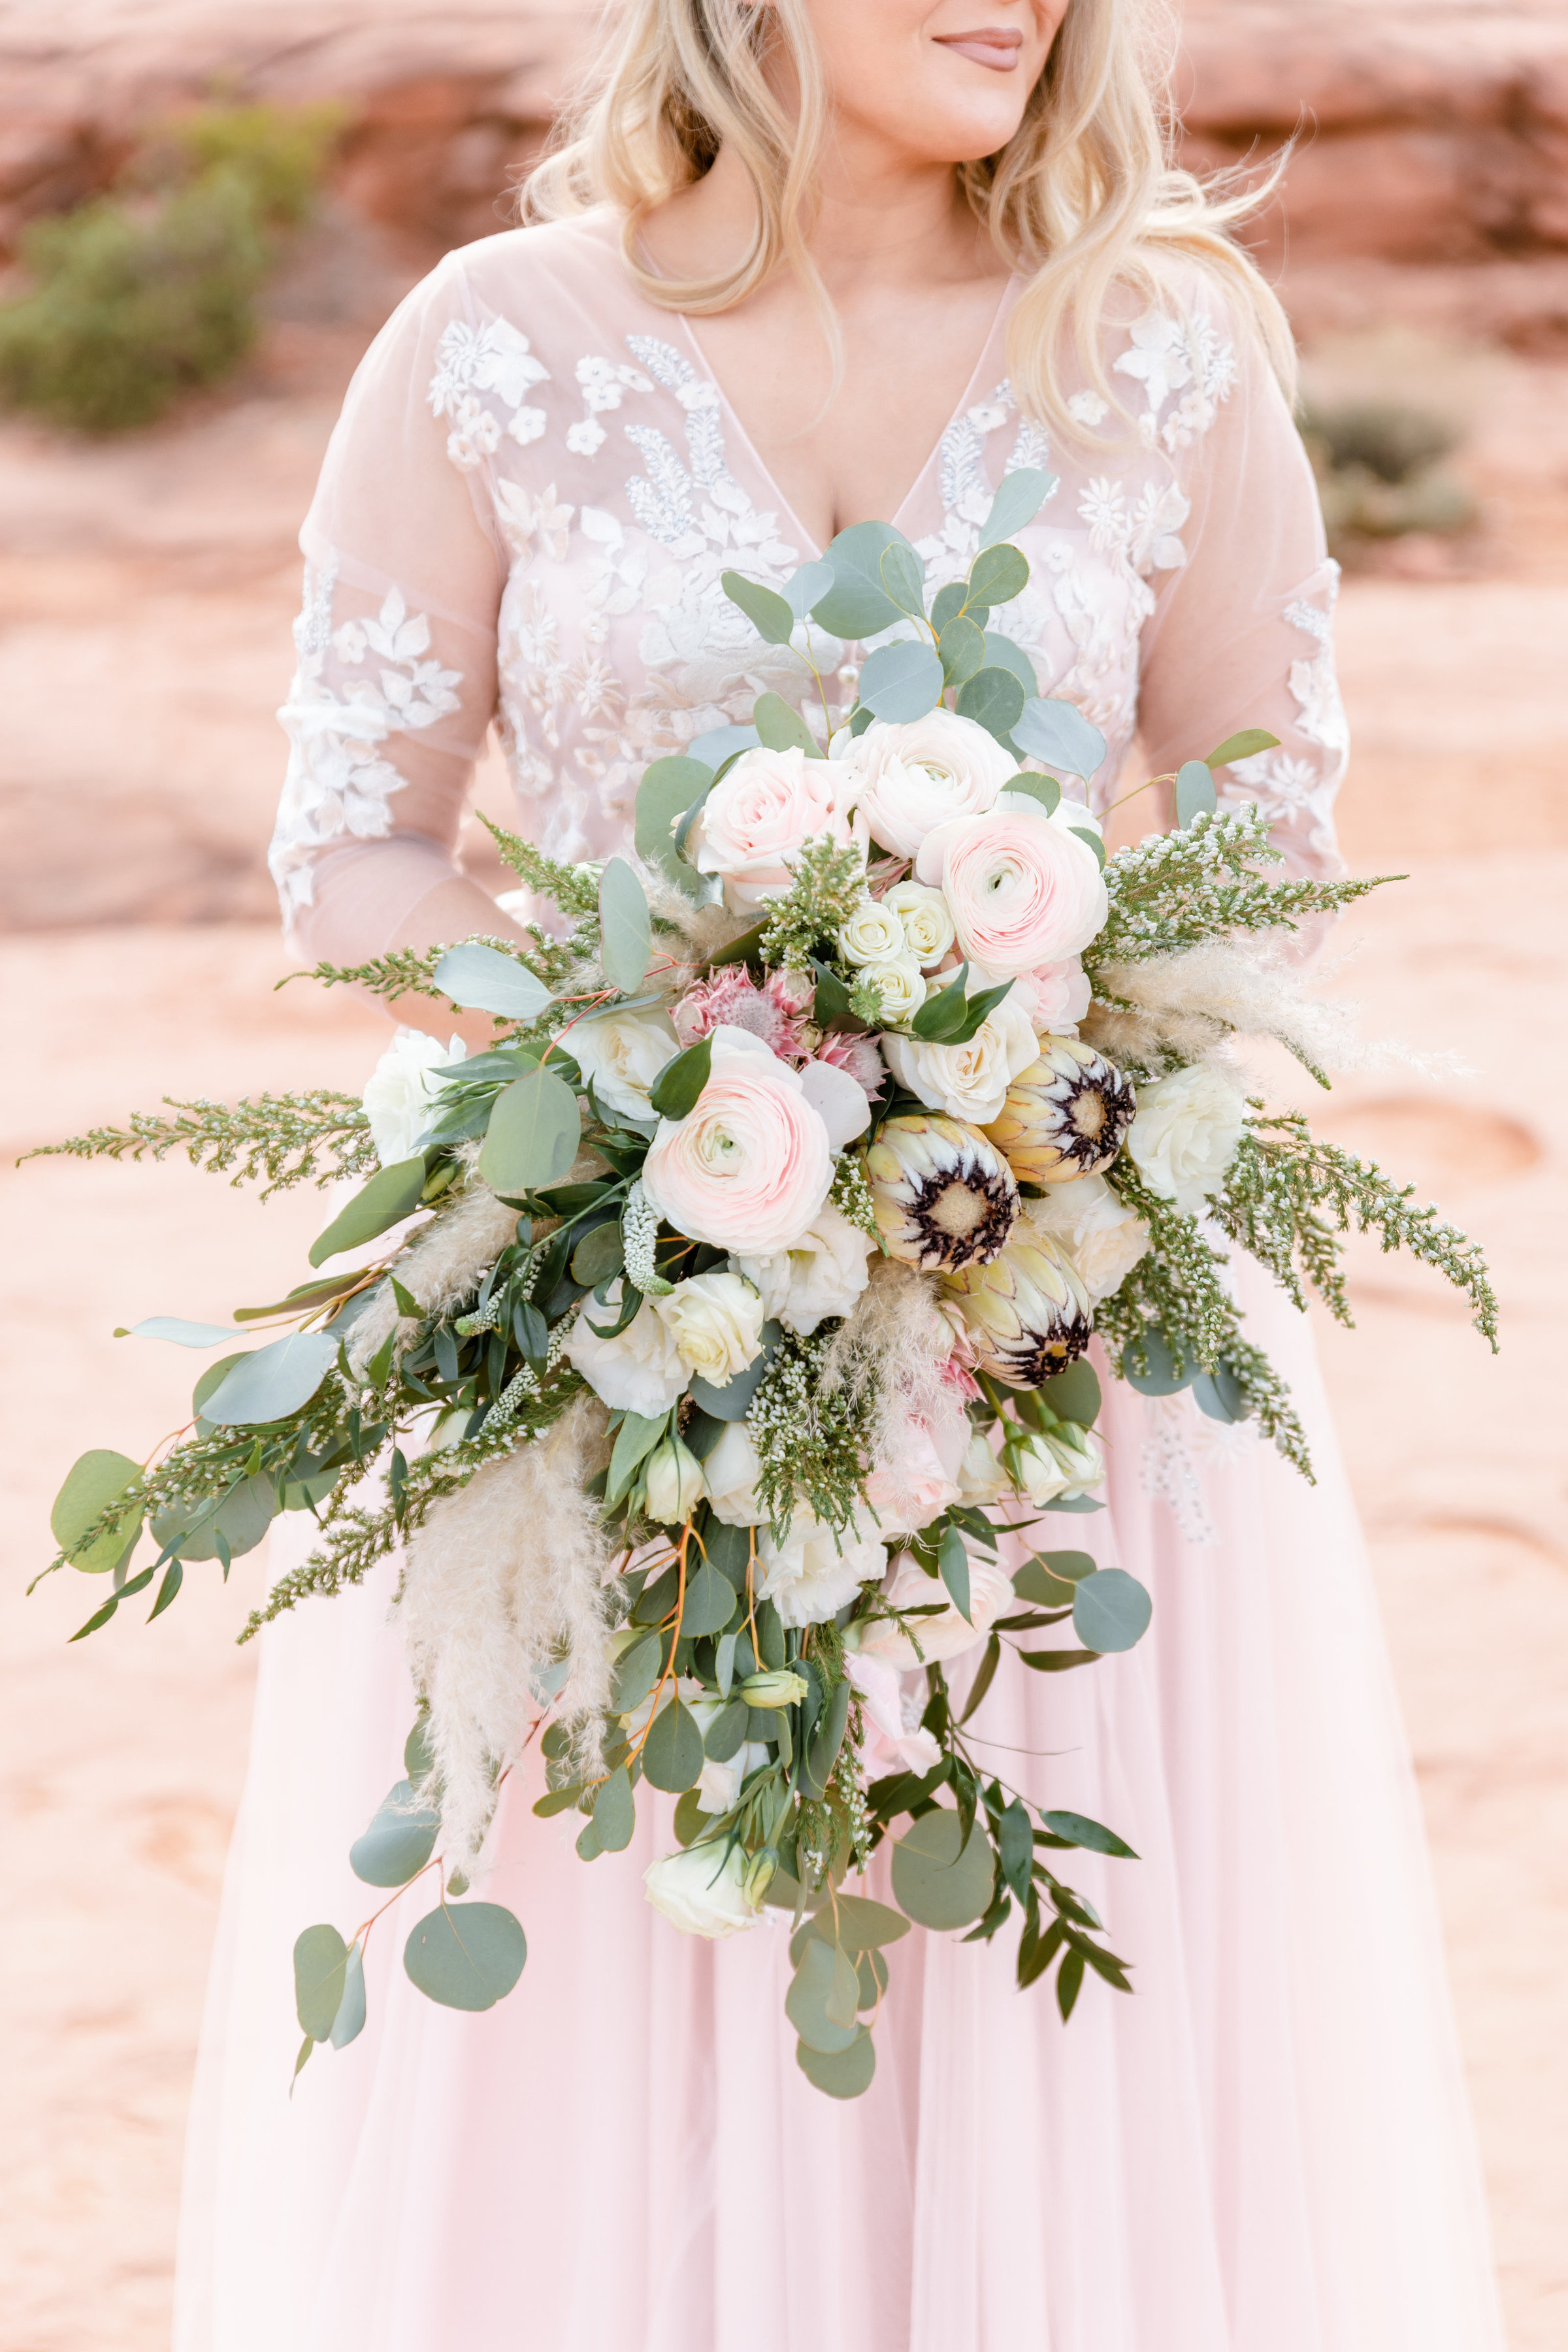 A Bride holding a bouquet from her Sedona elopement photos